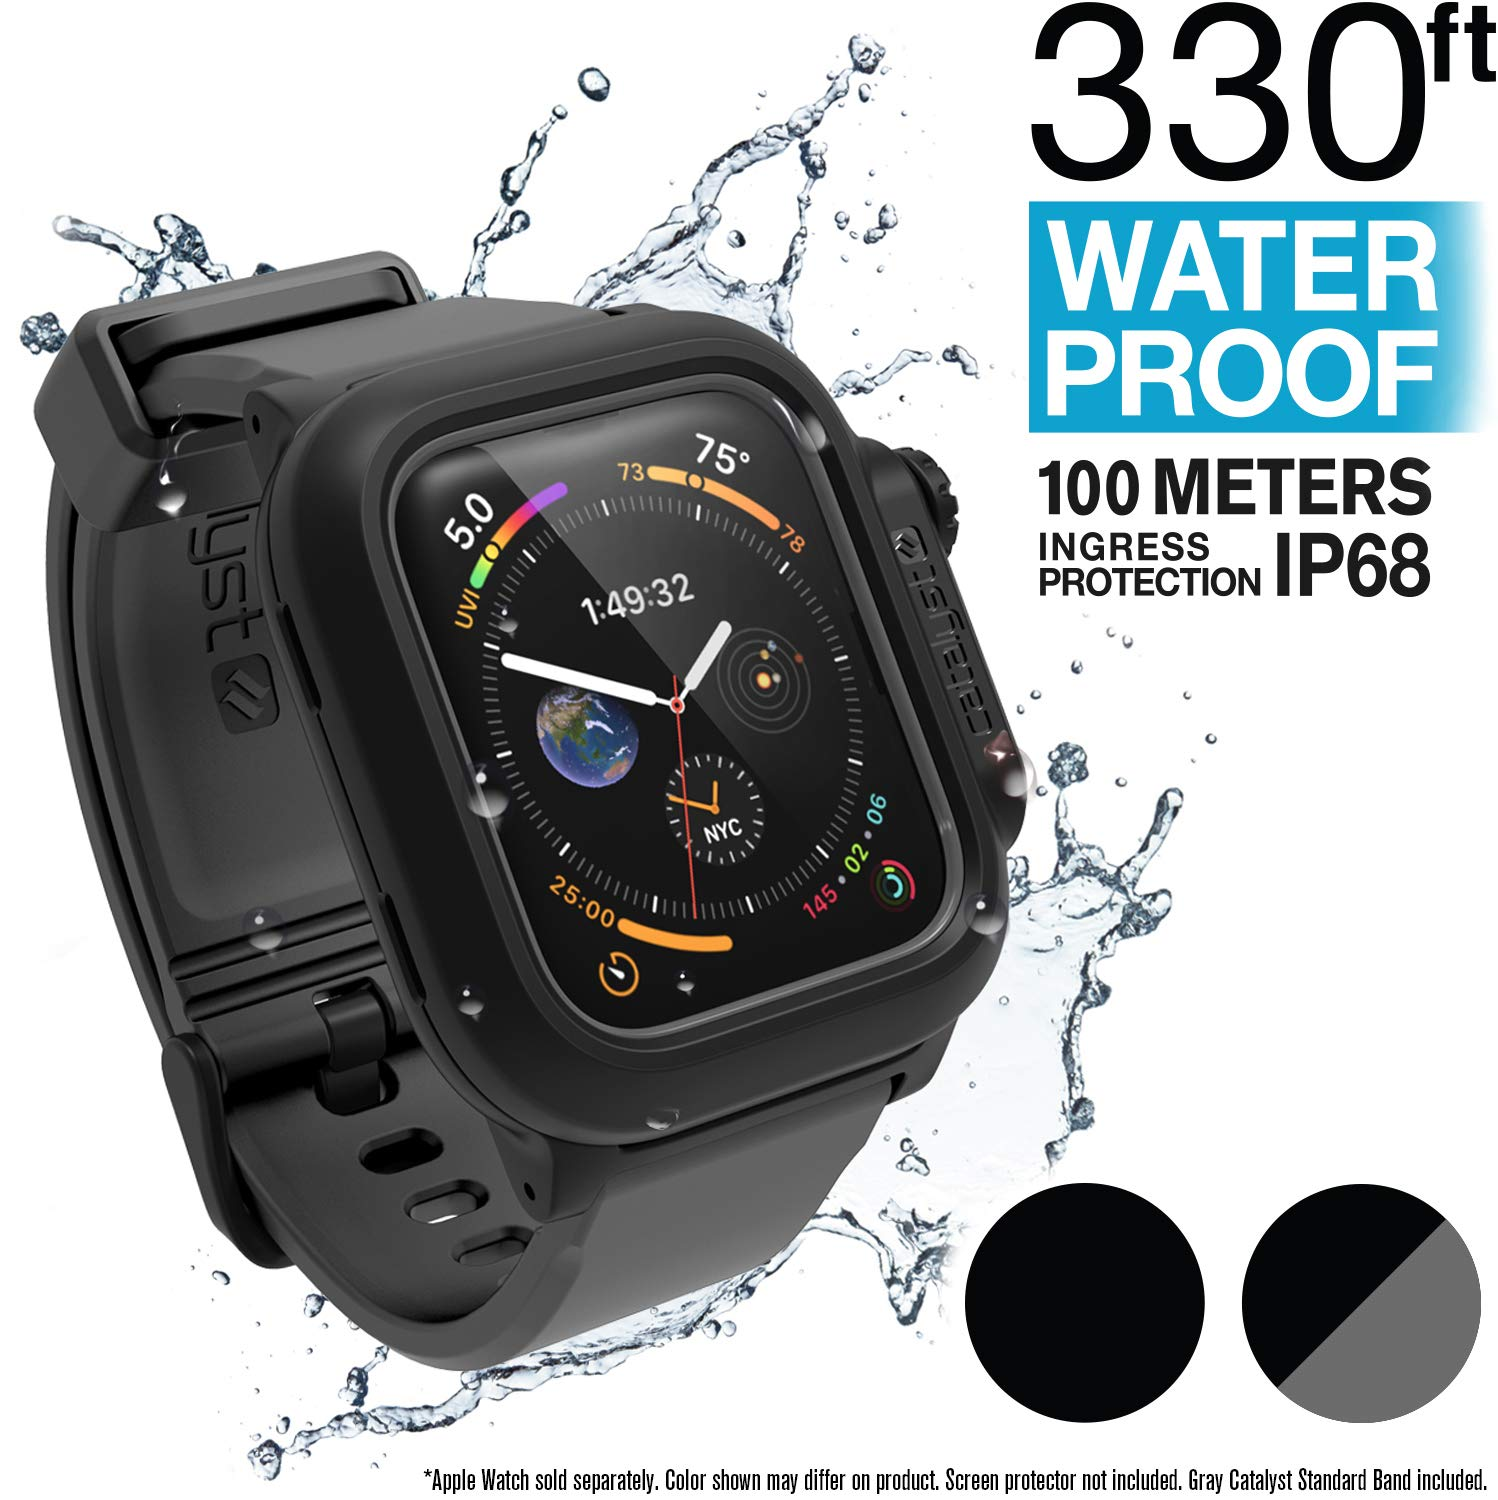 Are all apple watch series 4 waterproof